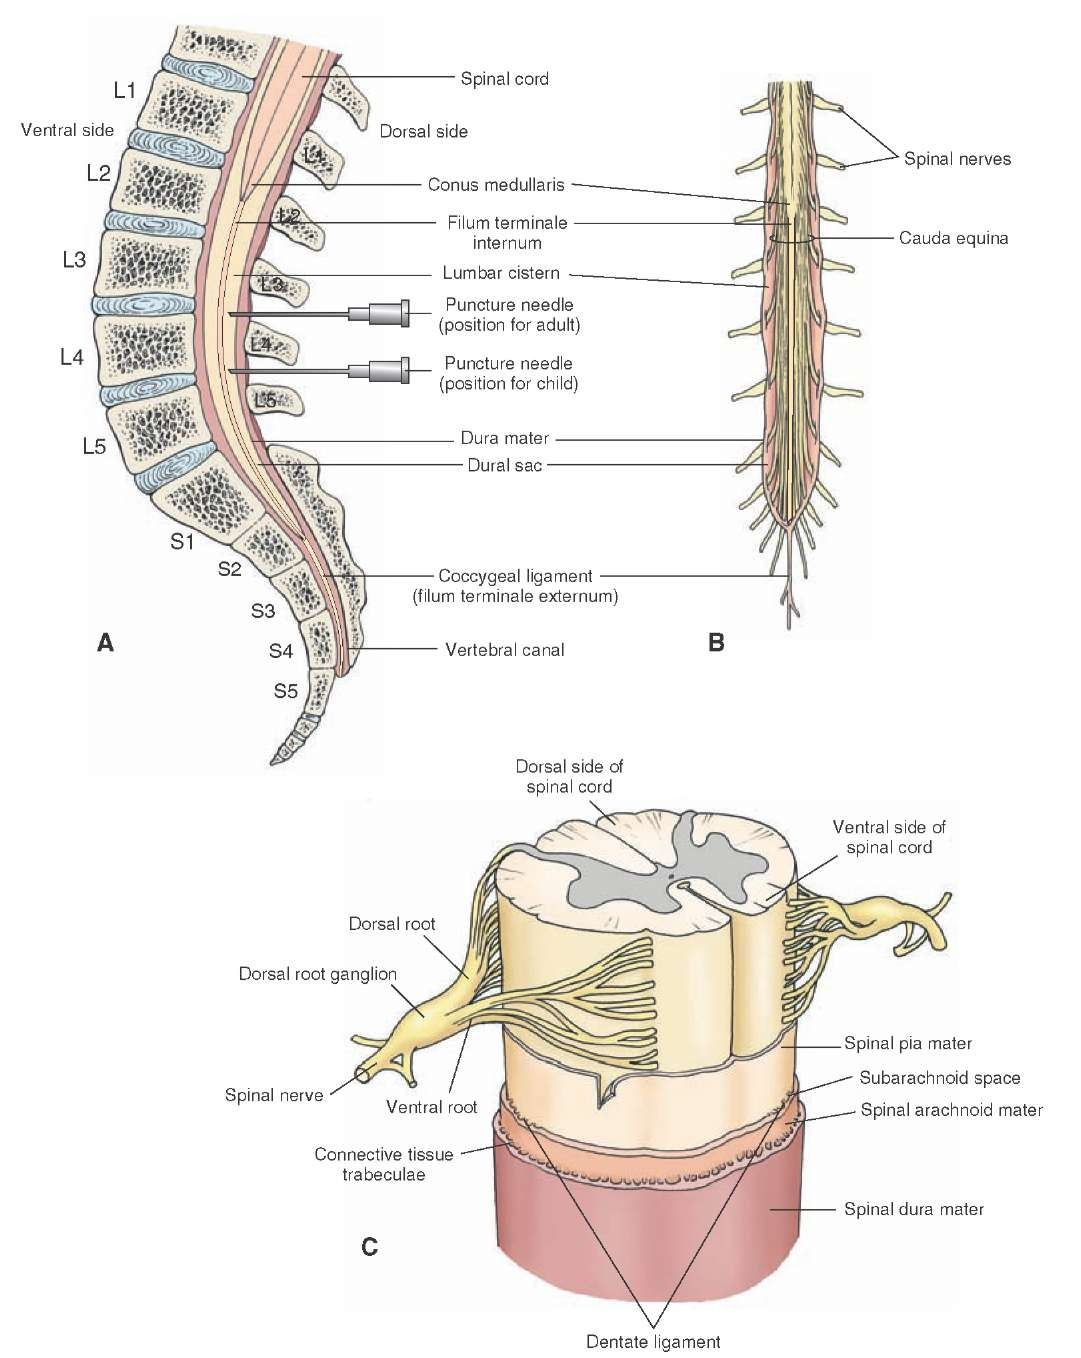 The Spinal Cord A The Lumbar Cistern Extends From The